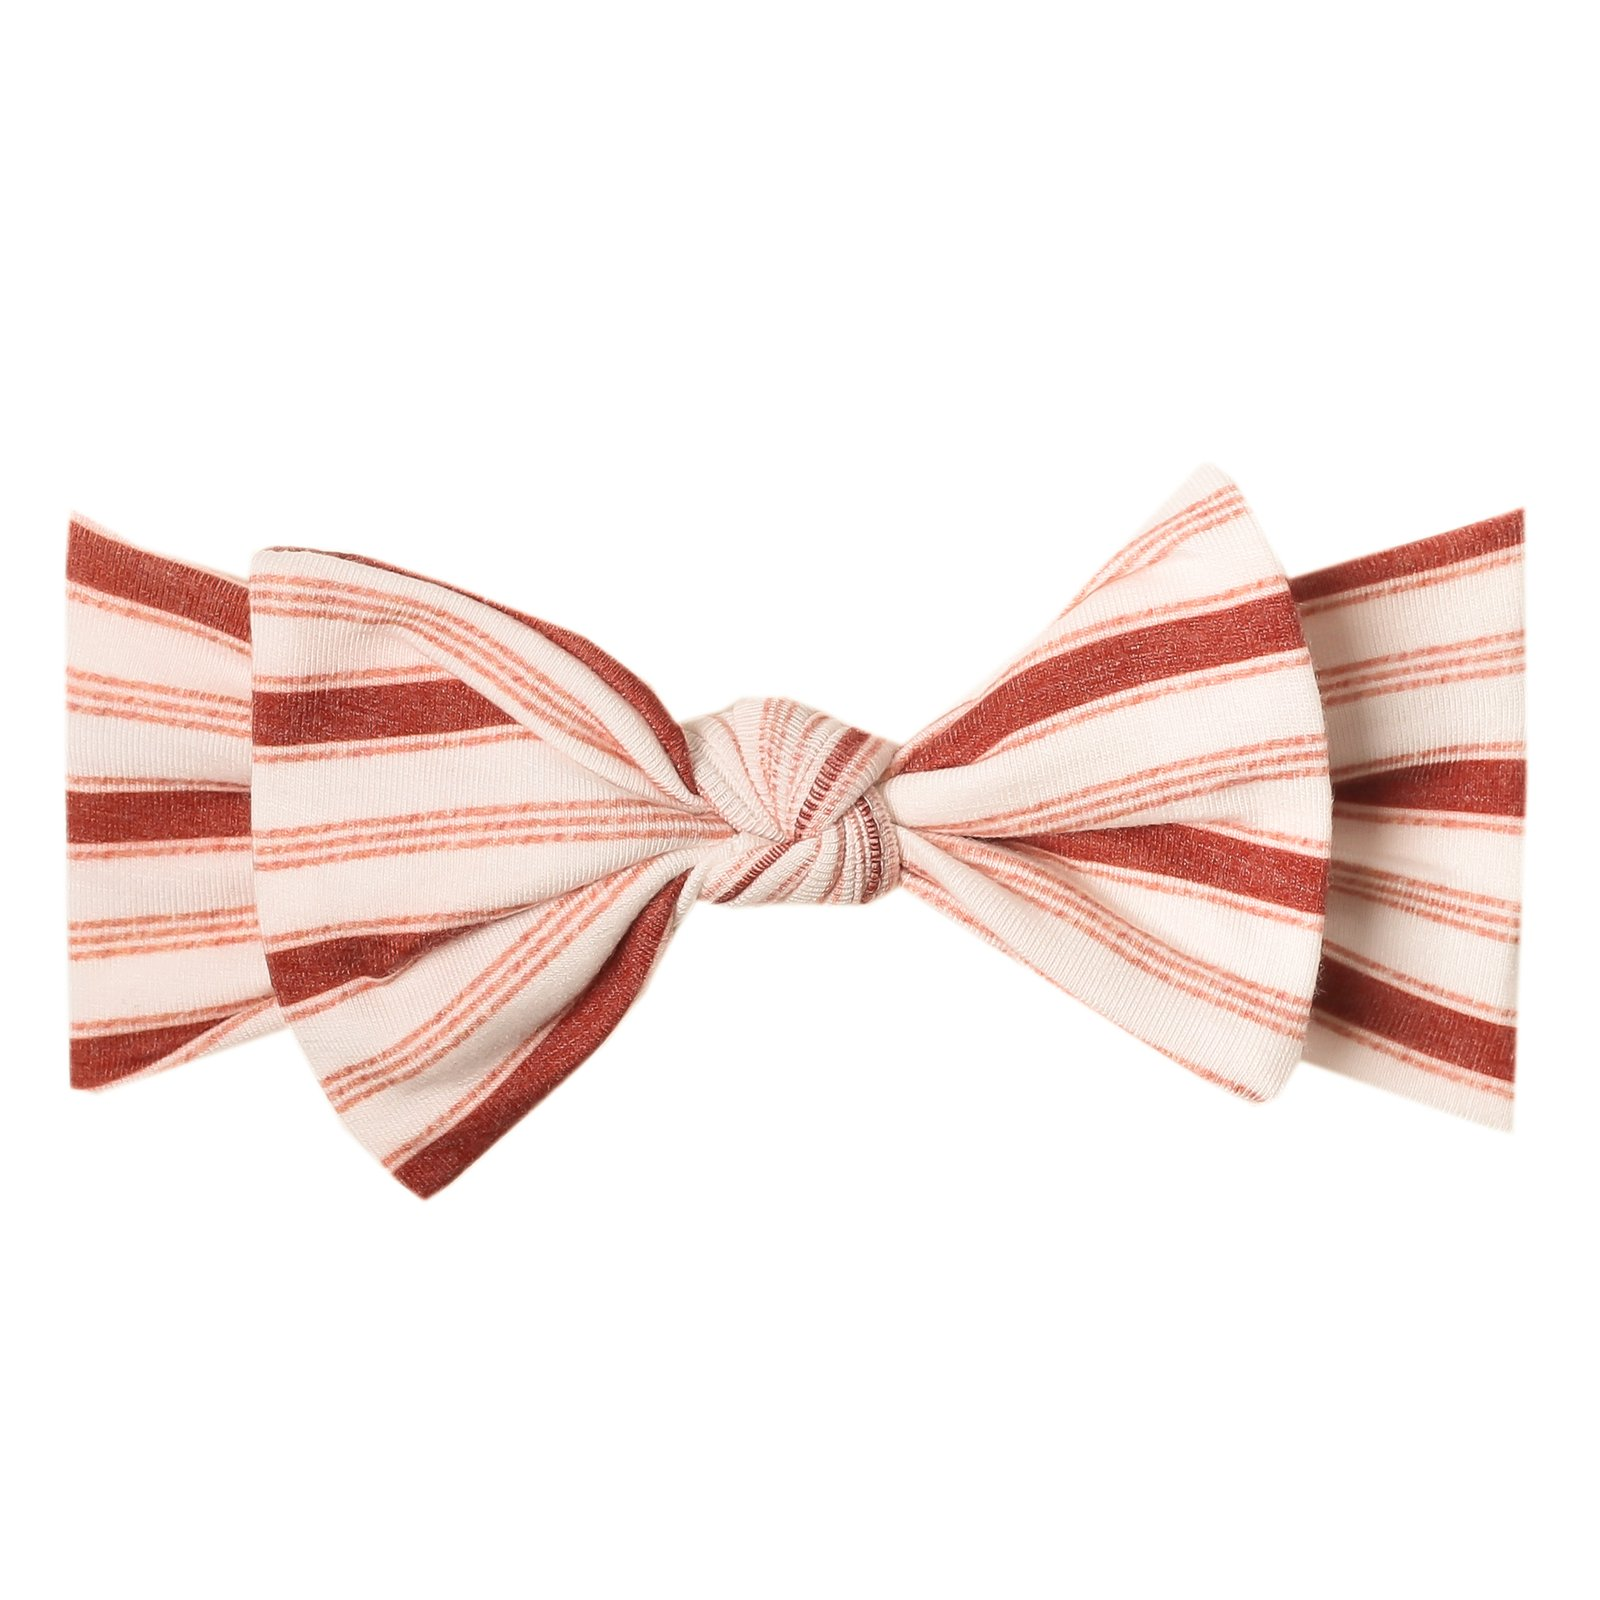 Cinnamon Knit Headband Bow